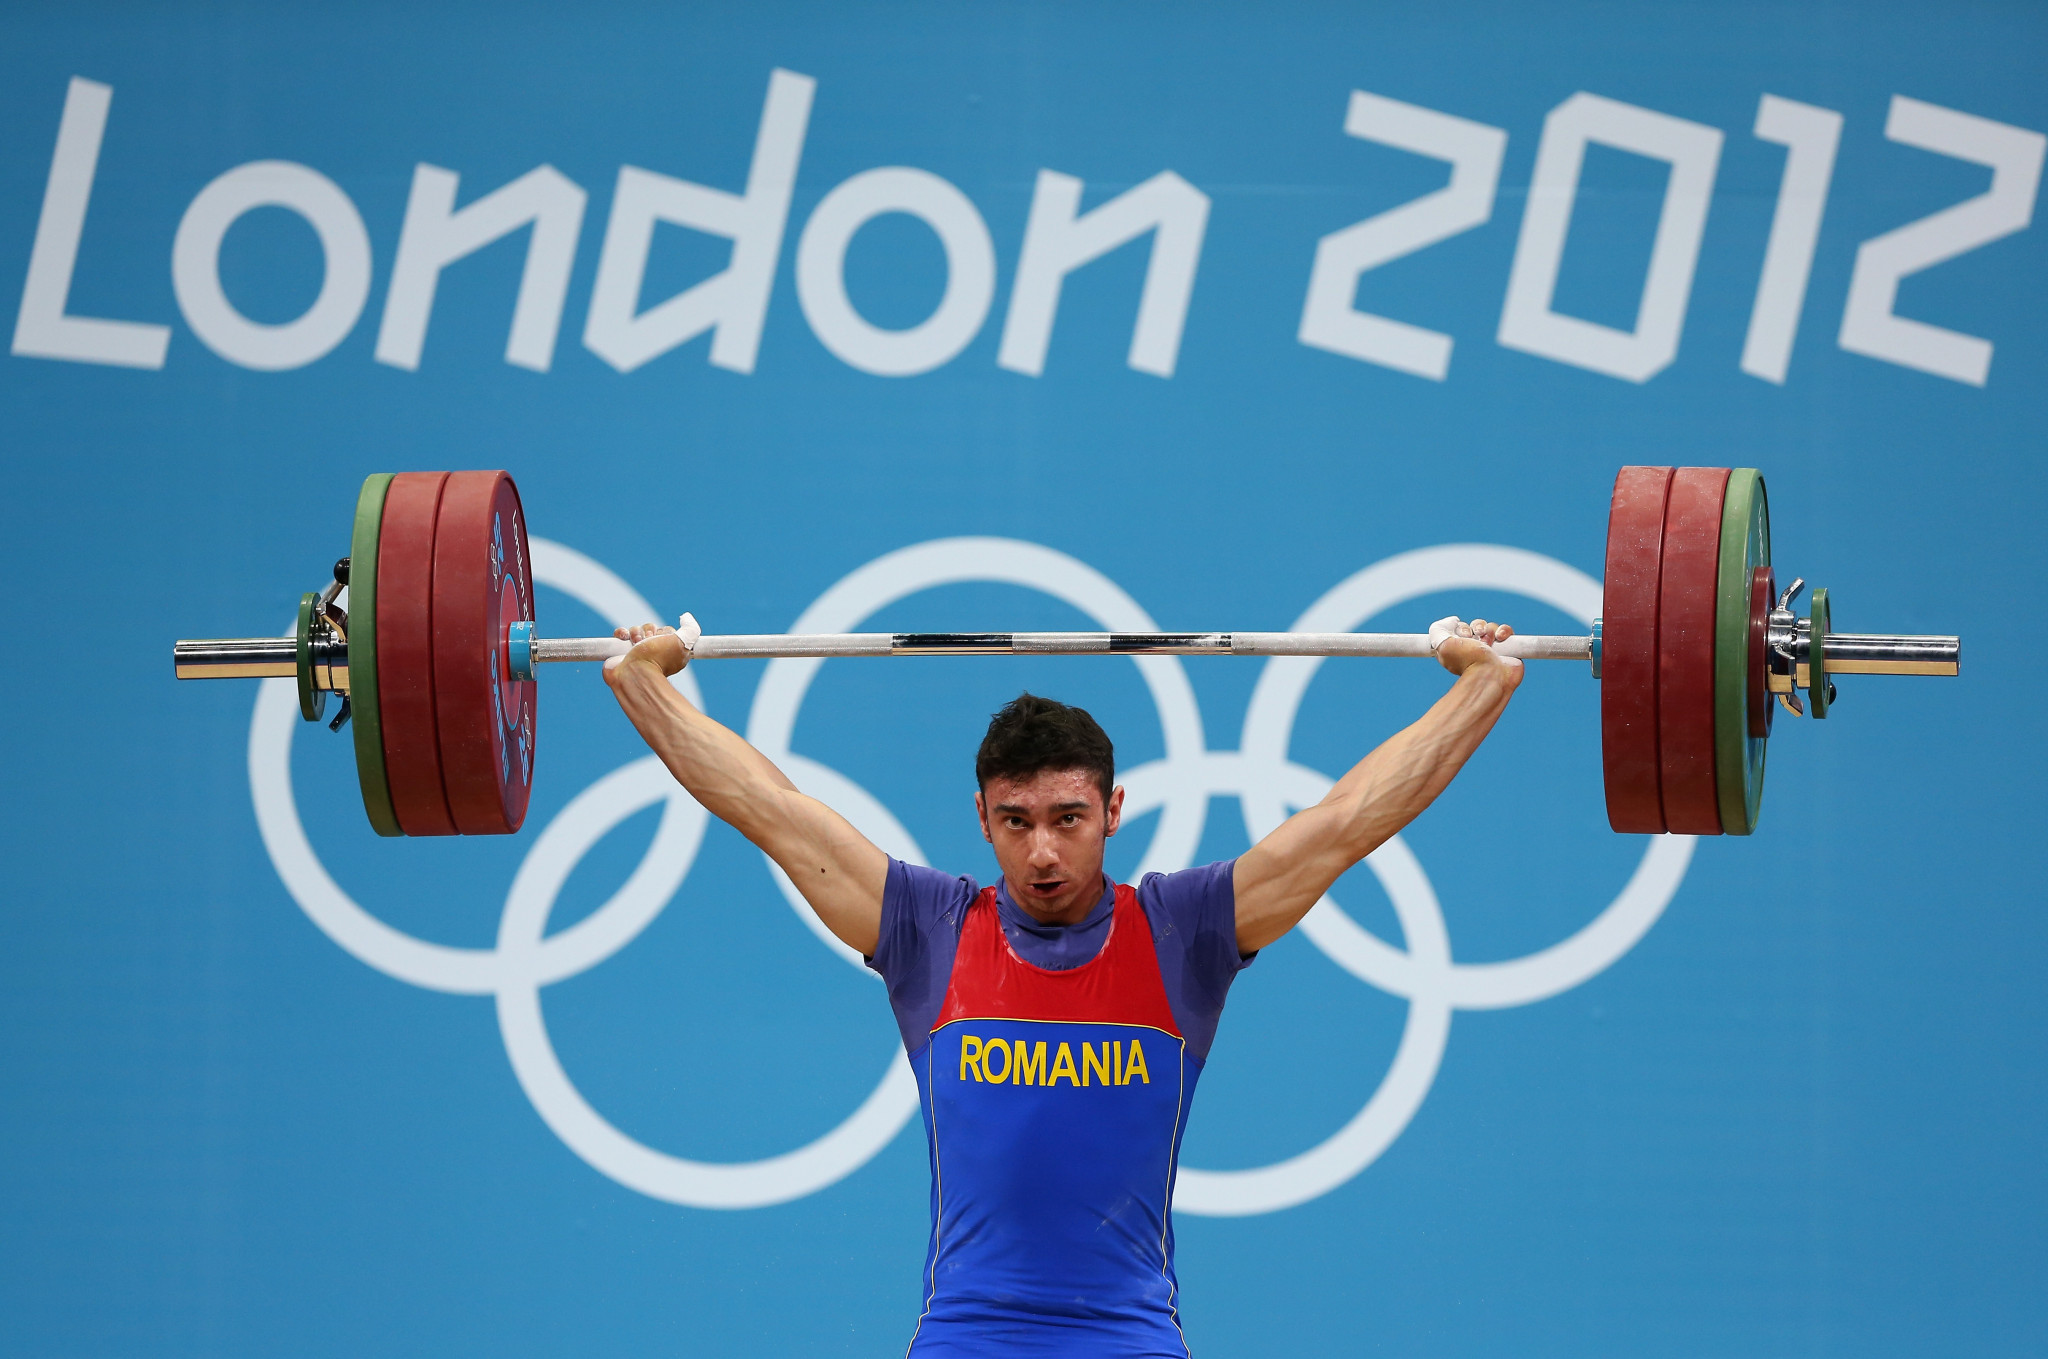 Razvan Martin was one of four Romanian weightlifters - the entire team - caught doping at London 2012 following IOC re-tests ©Getty Images